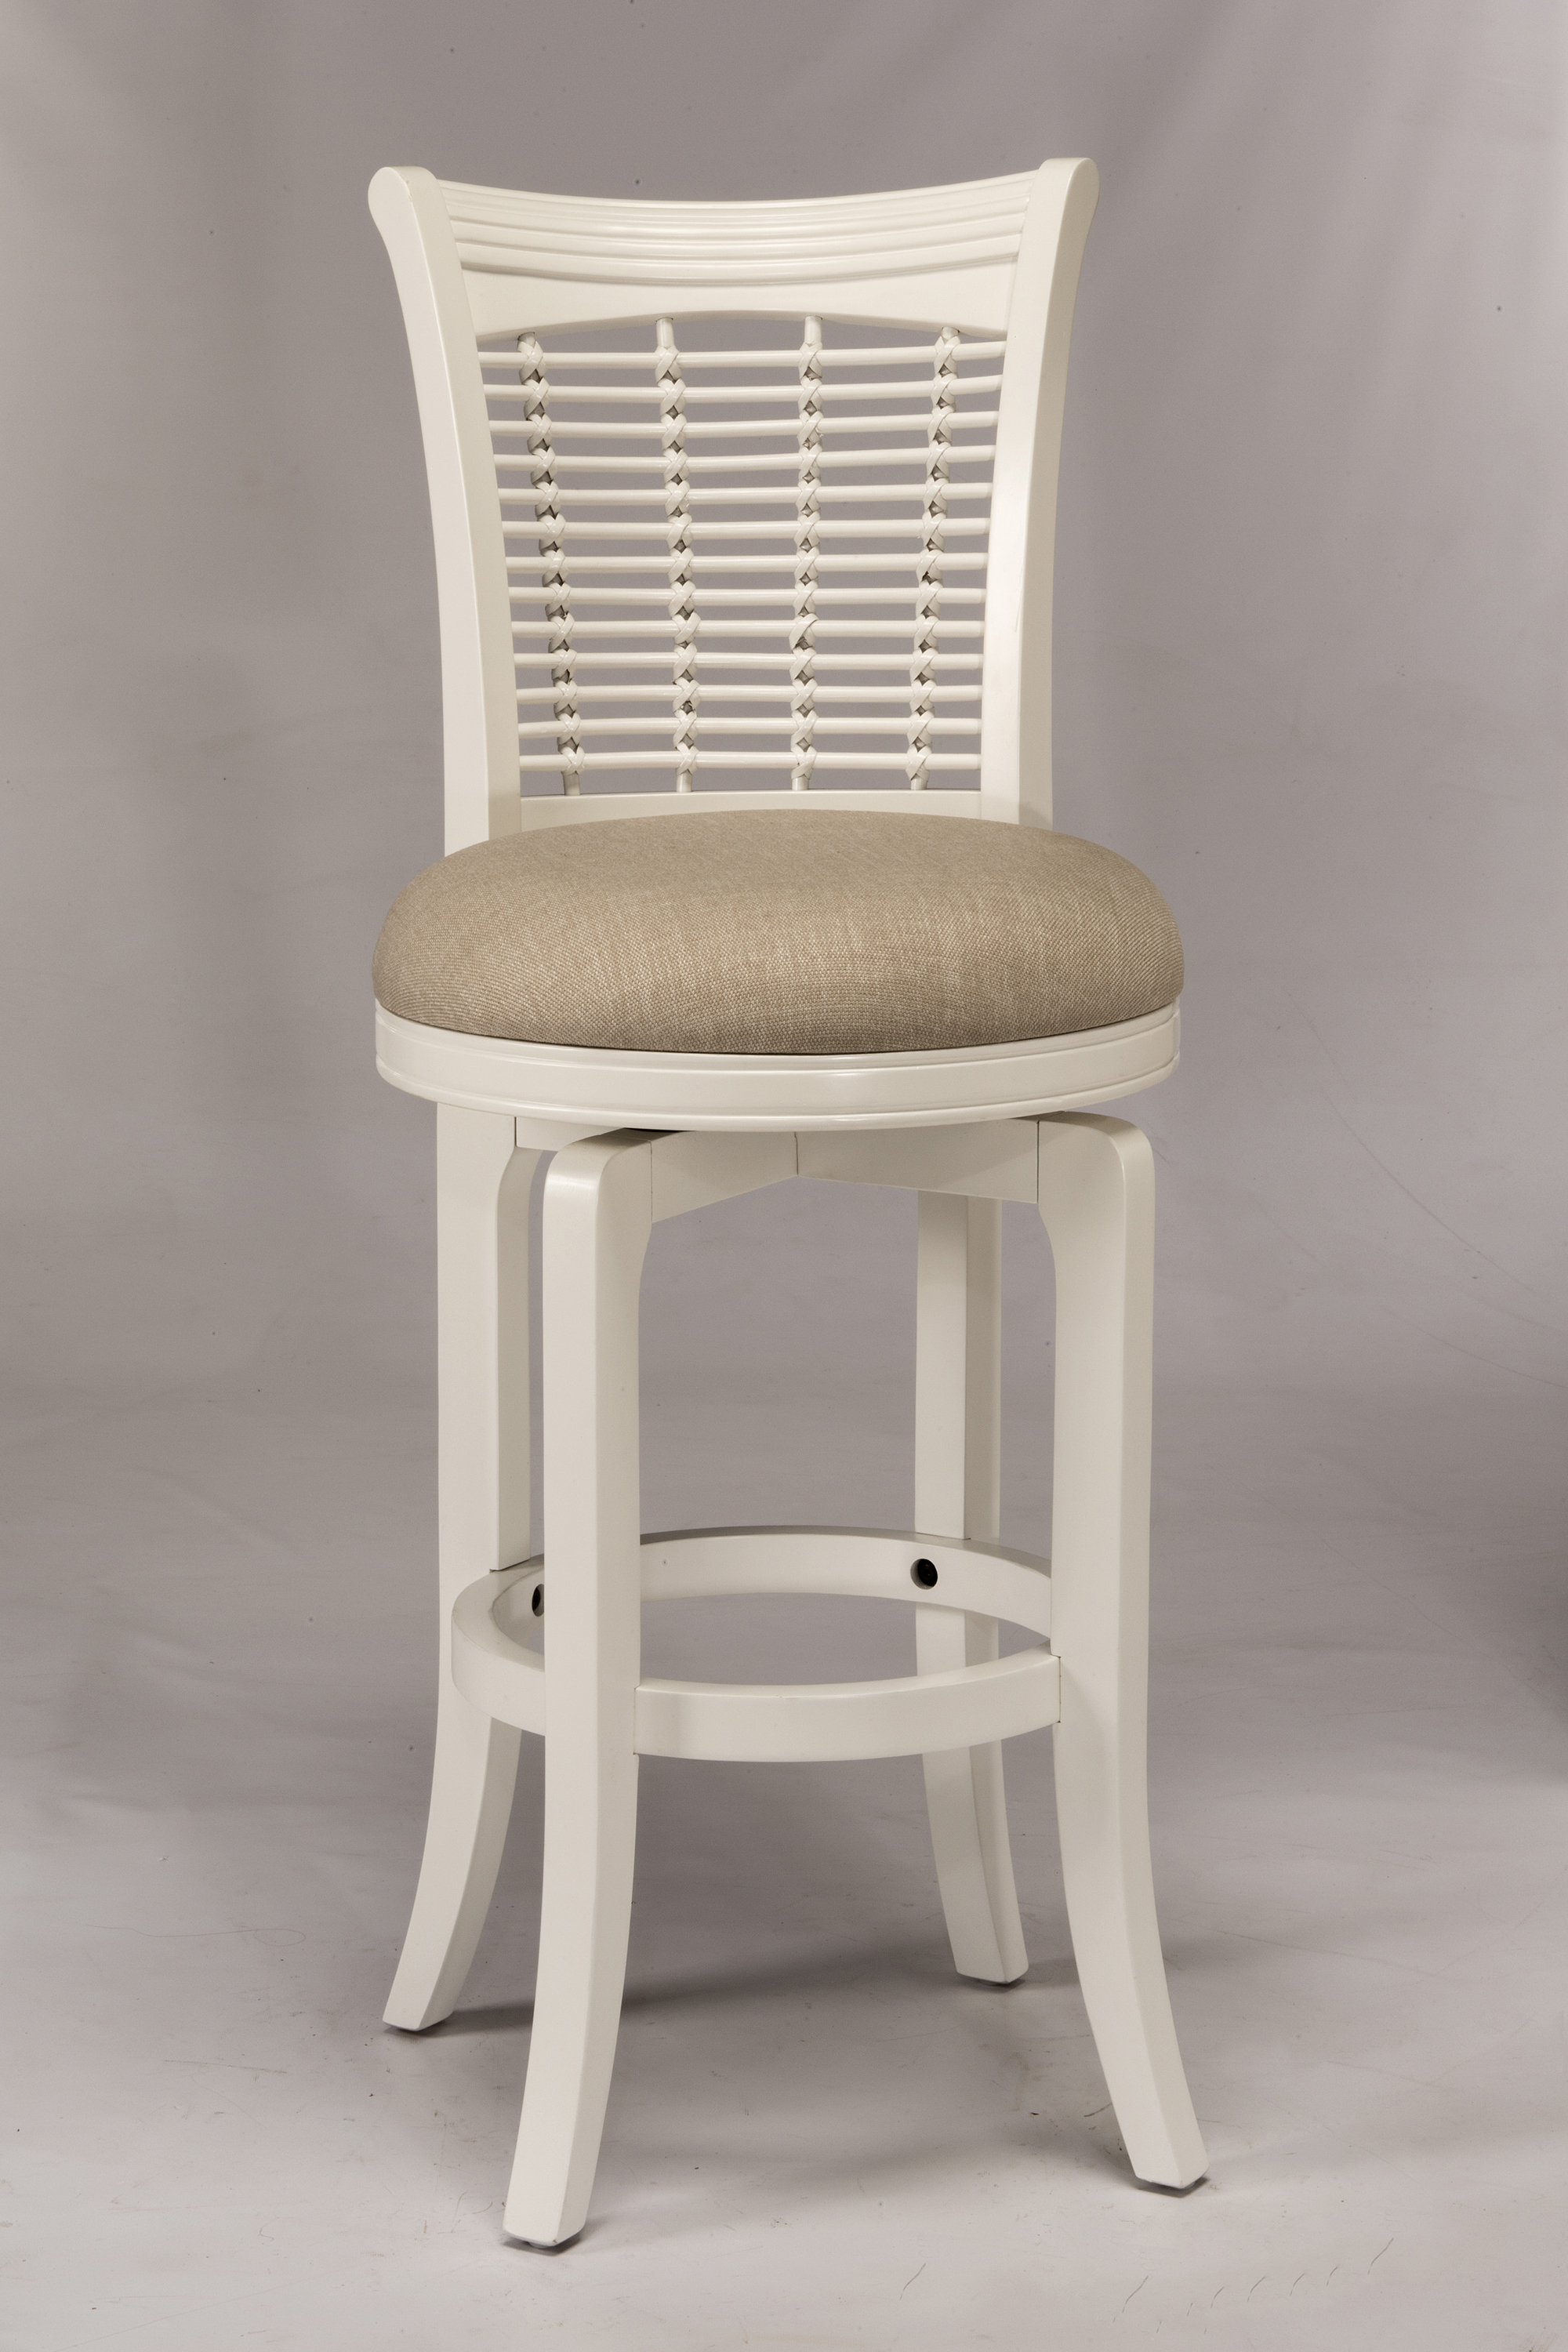 Hillsdale Wood Stools White Swiveling Counter Height Stool